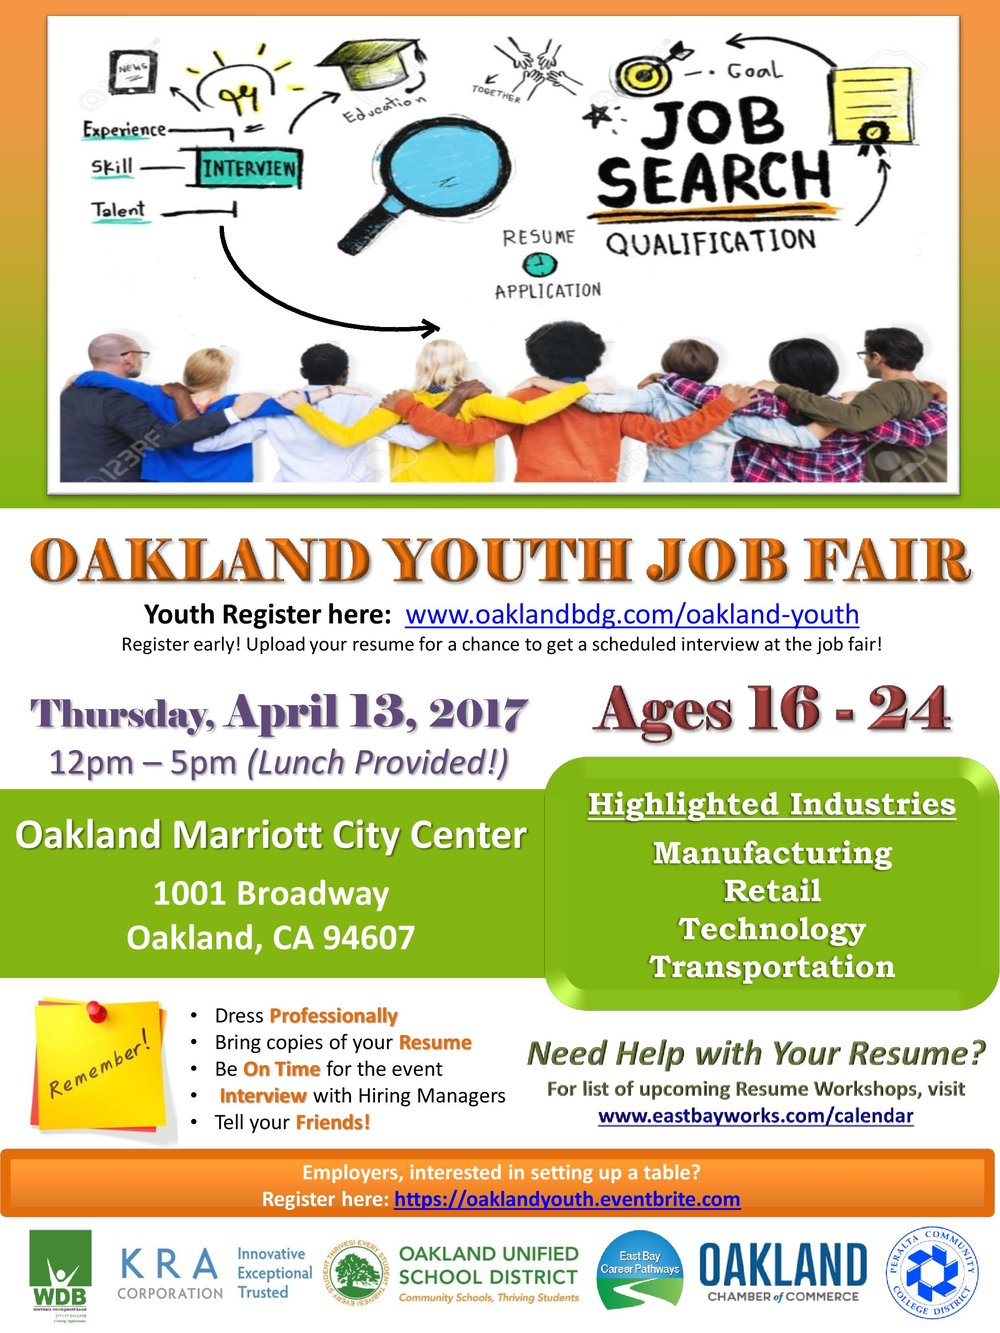 Oakland Youth Job Fair FLYER.jpg